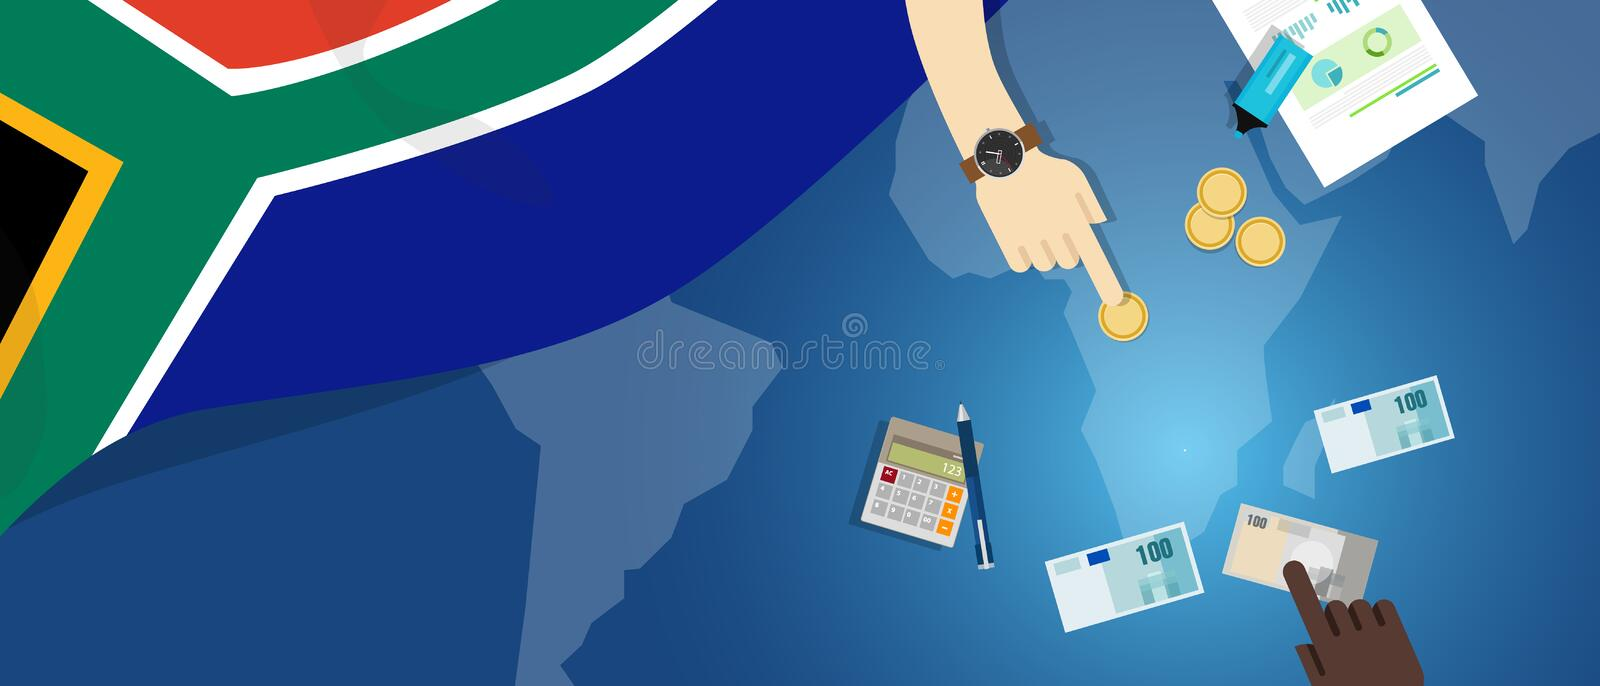 South Africa economy fiscal money trade concept illustration of financial banking budget with flag map and currency. Vector stock illustration